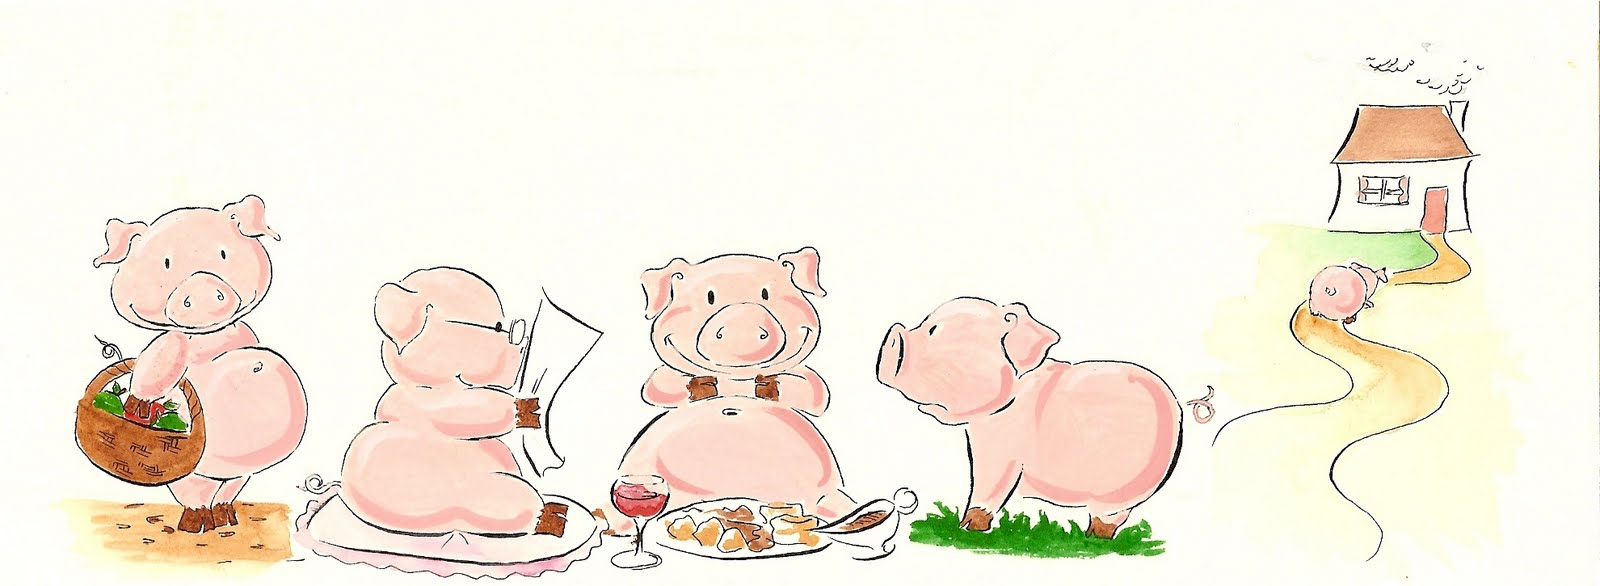 This little piggy clipart clip stock This little piggy went to market clipart - ClipartFest clip stock